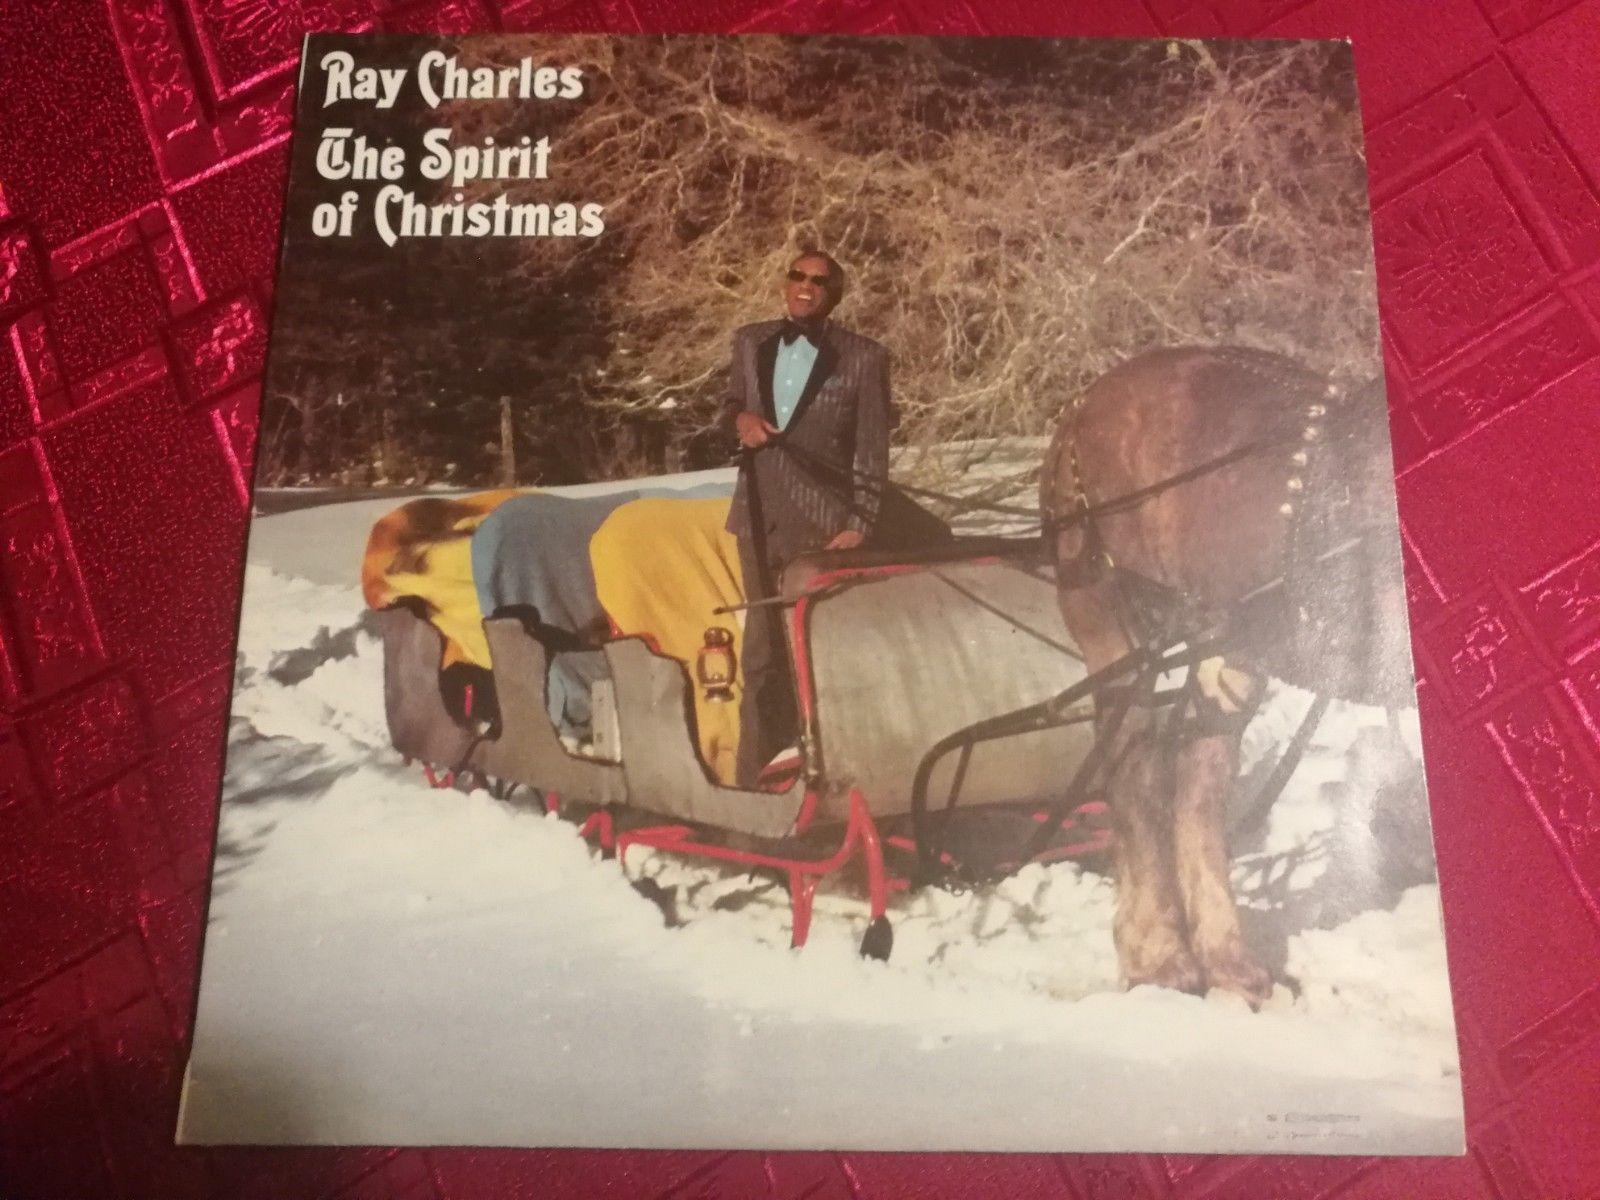 RAY CHARLES - The Spirit Of Christmas - NEAR MINT LP / NM COVER - RARE VINYL